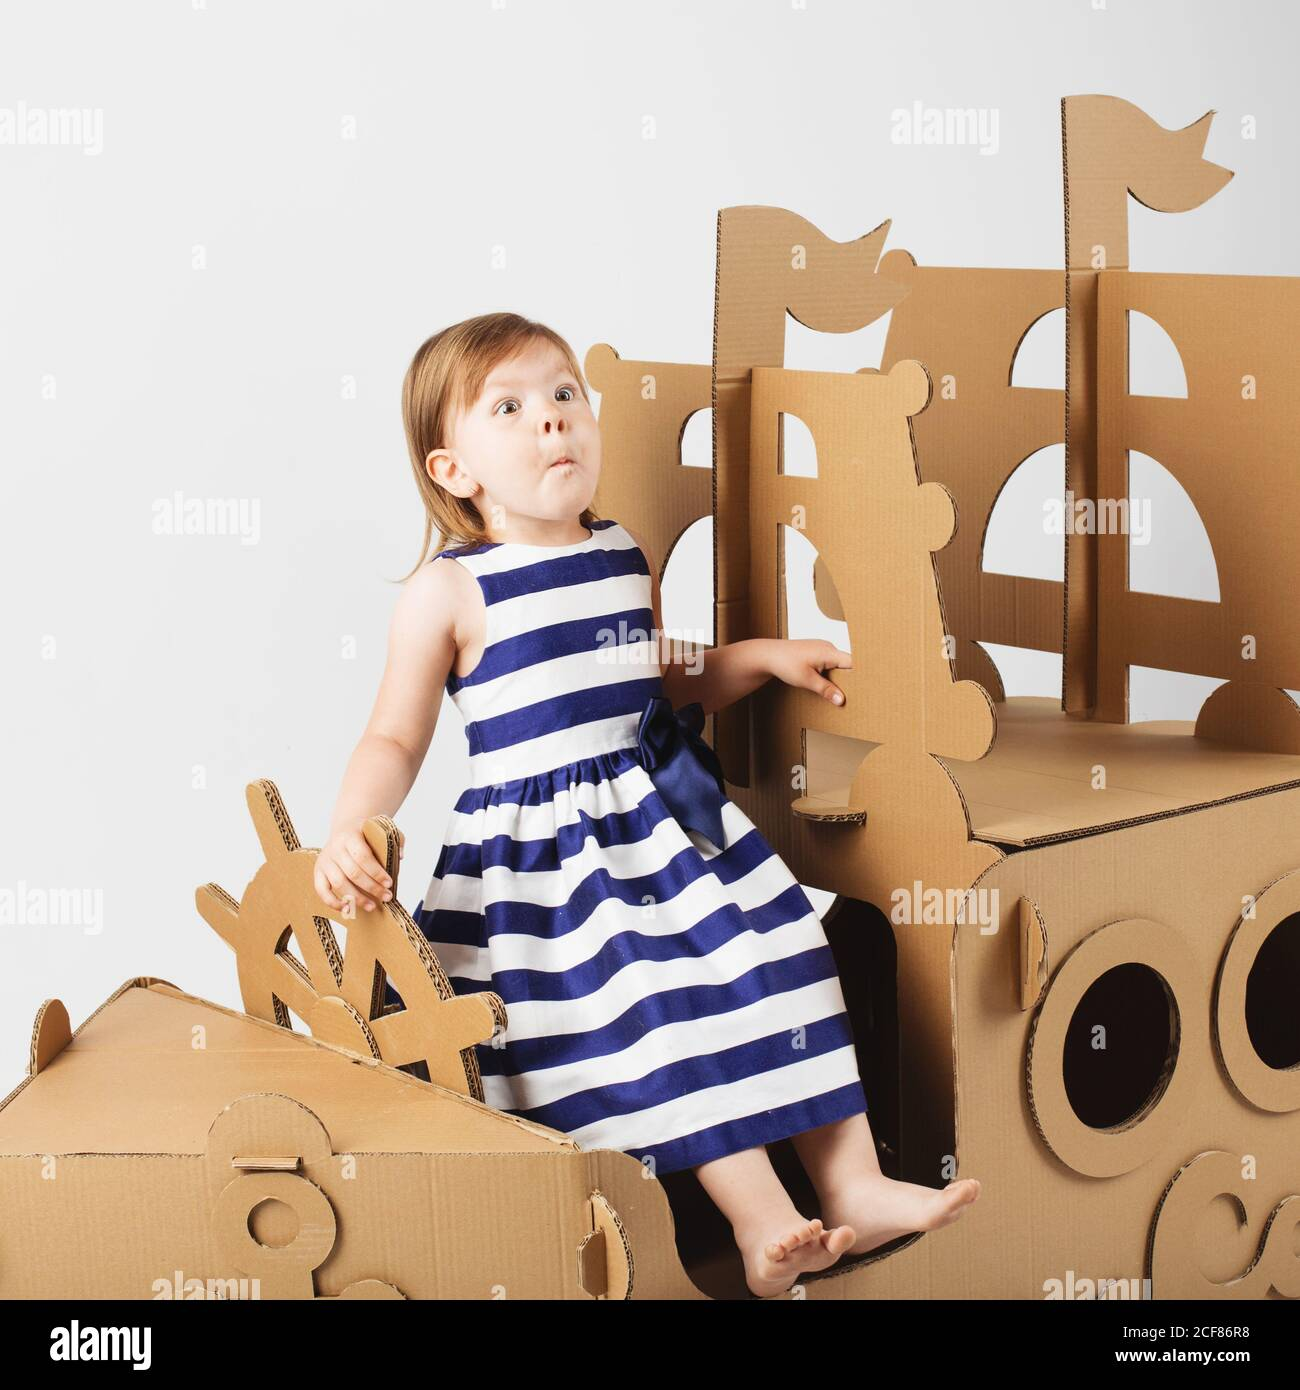 Cute  Little girl wearing striped dress in a marine style playing with cardboard ship on white background. Happy children. Childhood. Fantasy, imagina Stock Photo